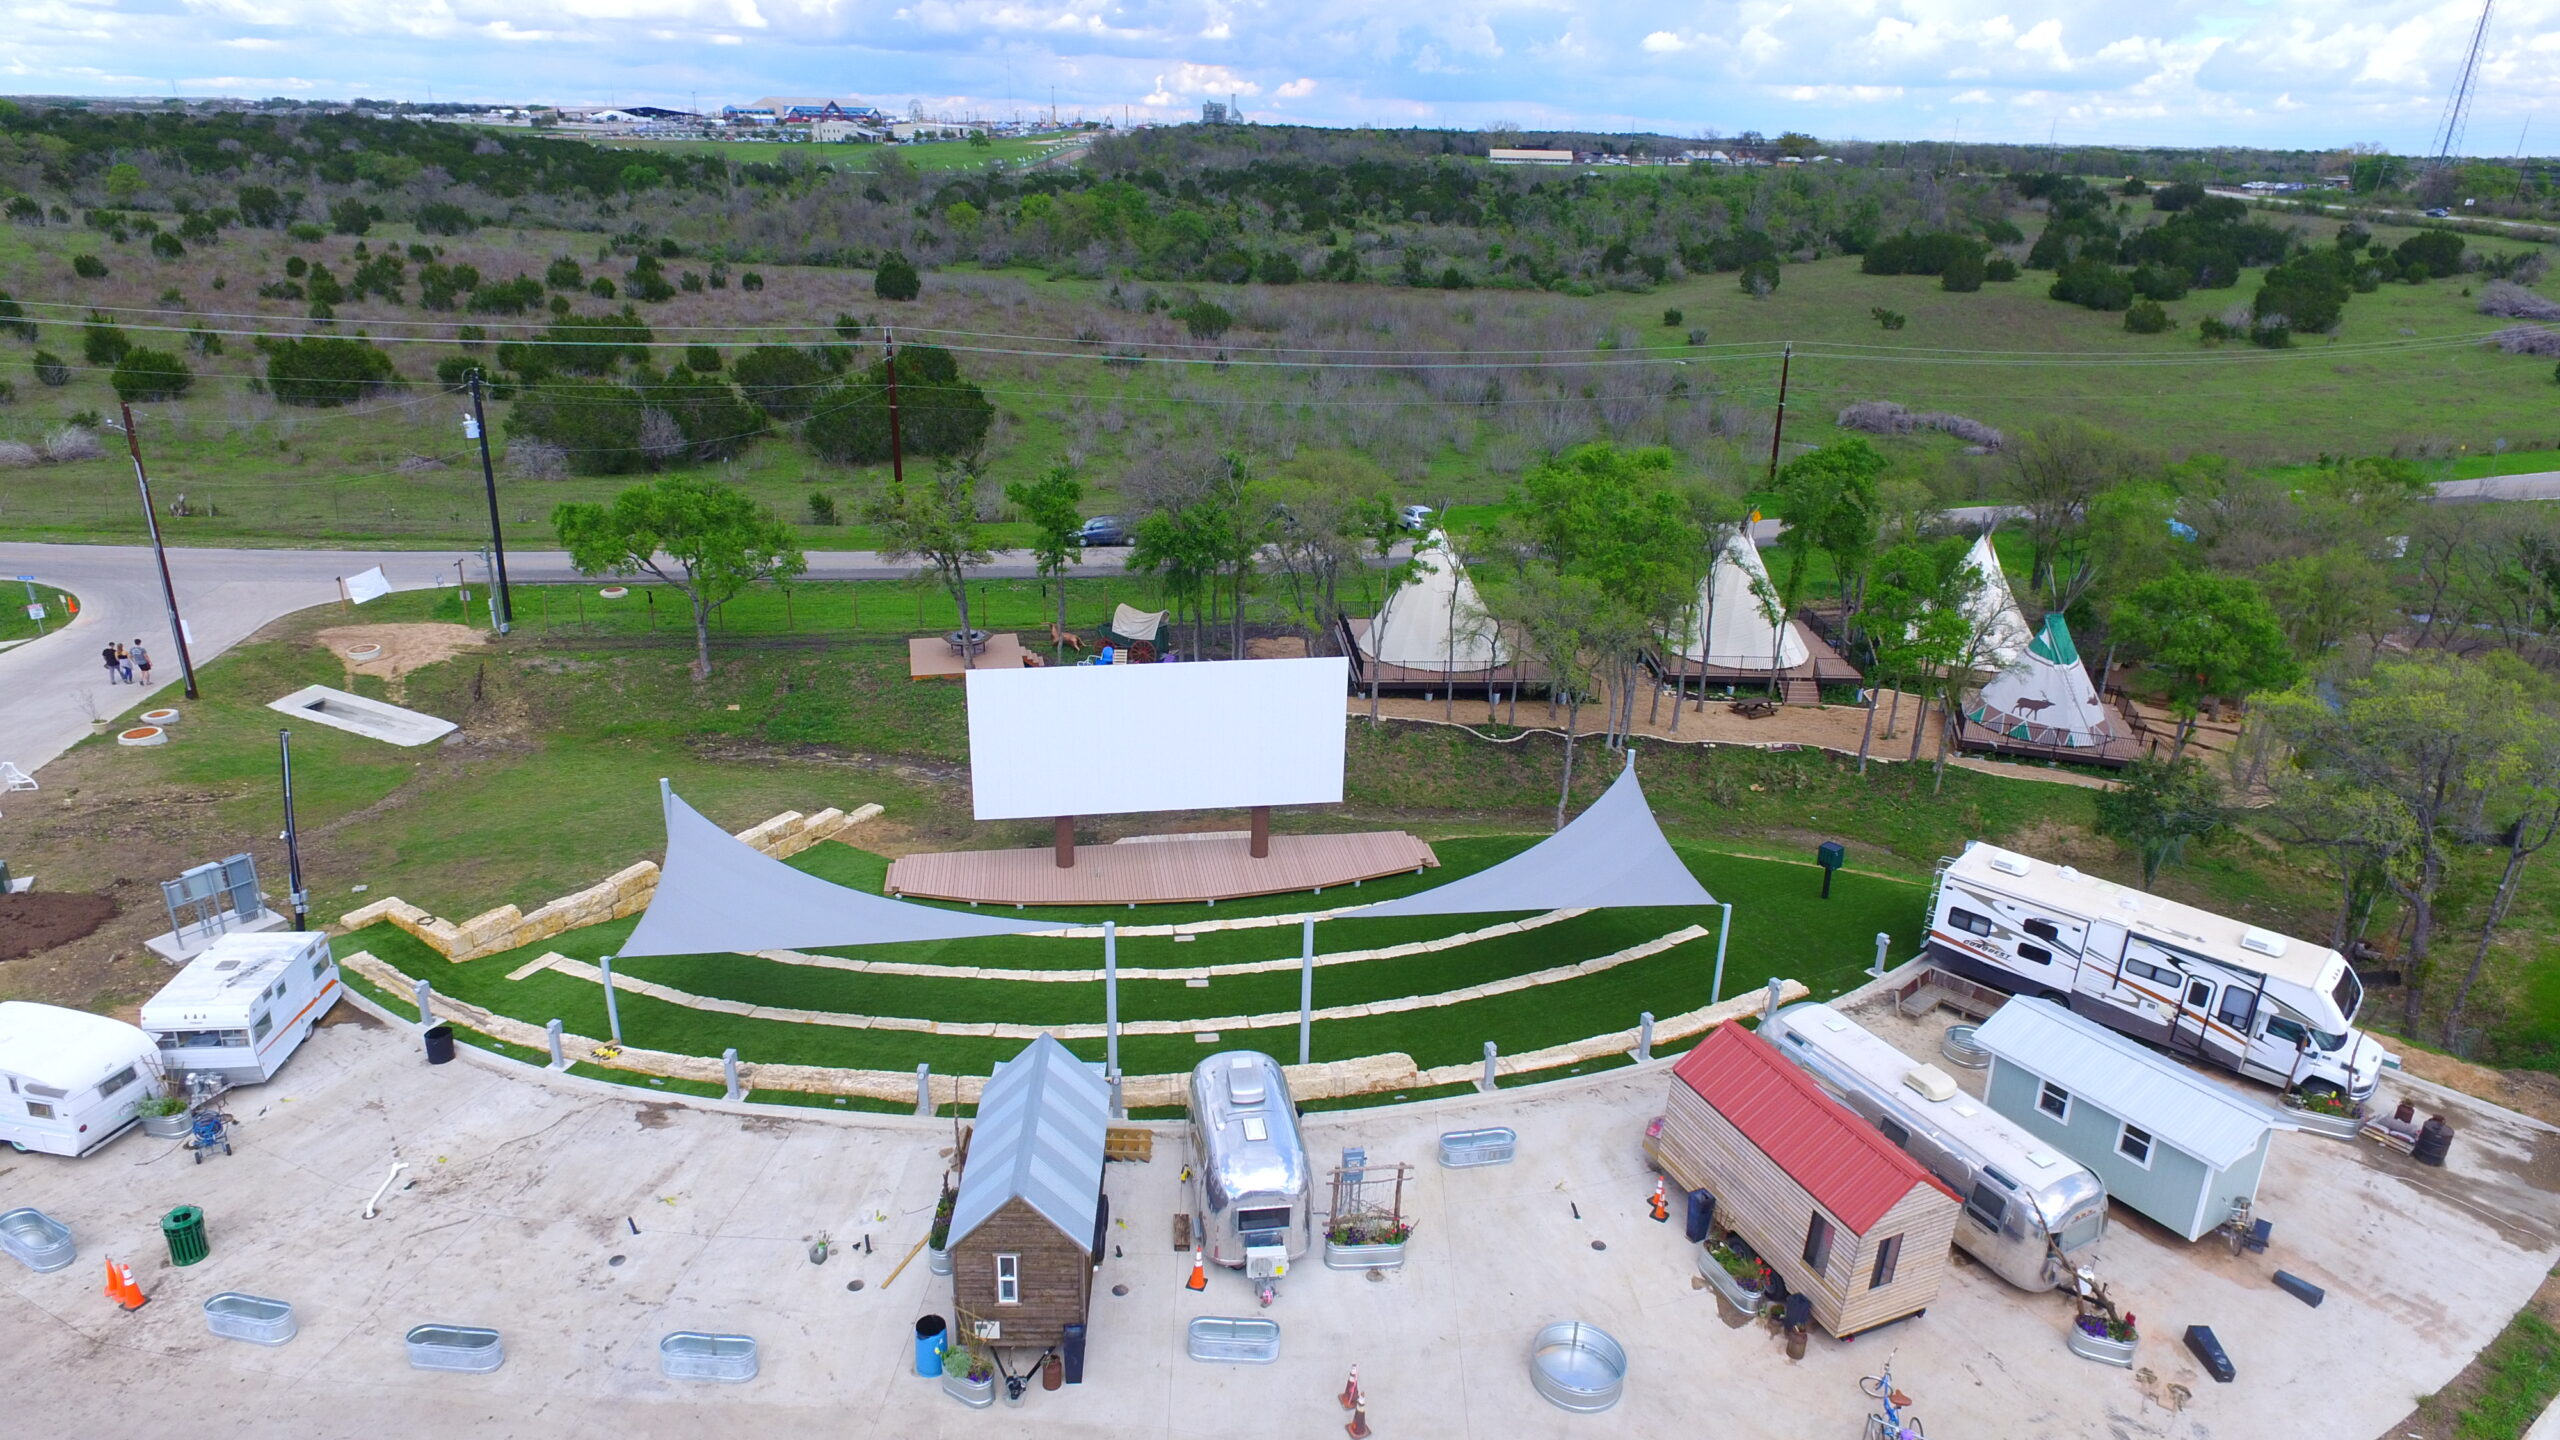 Alamo Drafthouse Amphitheater at Community First Village